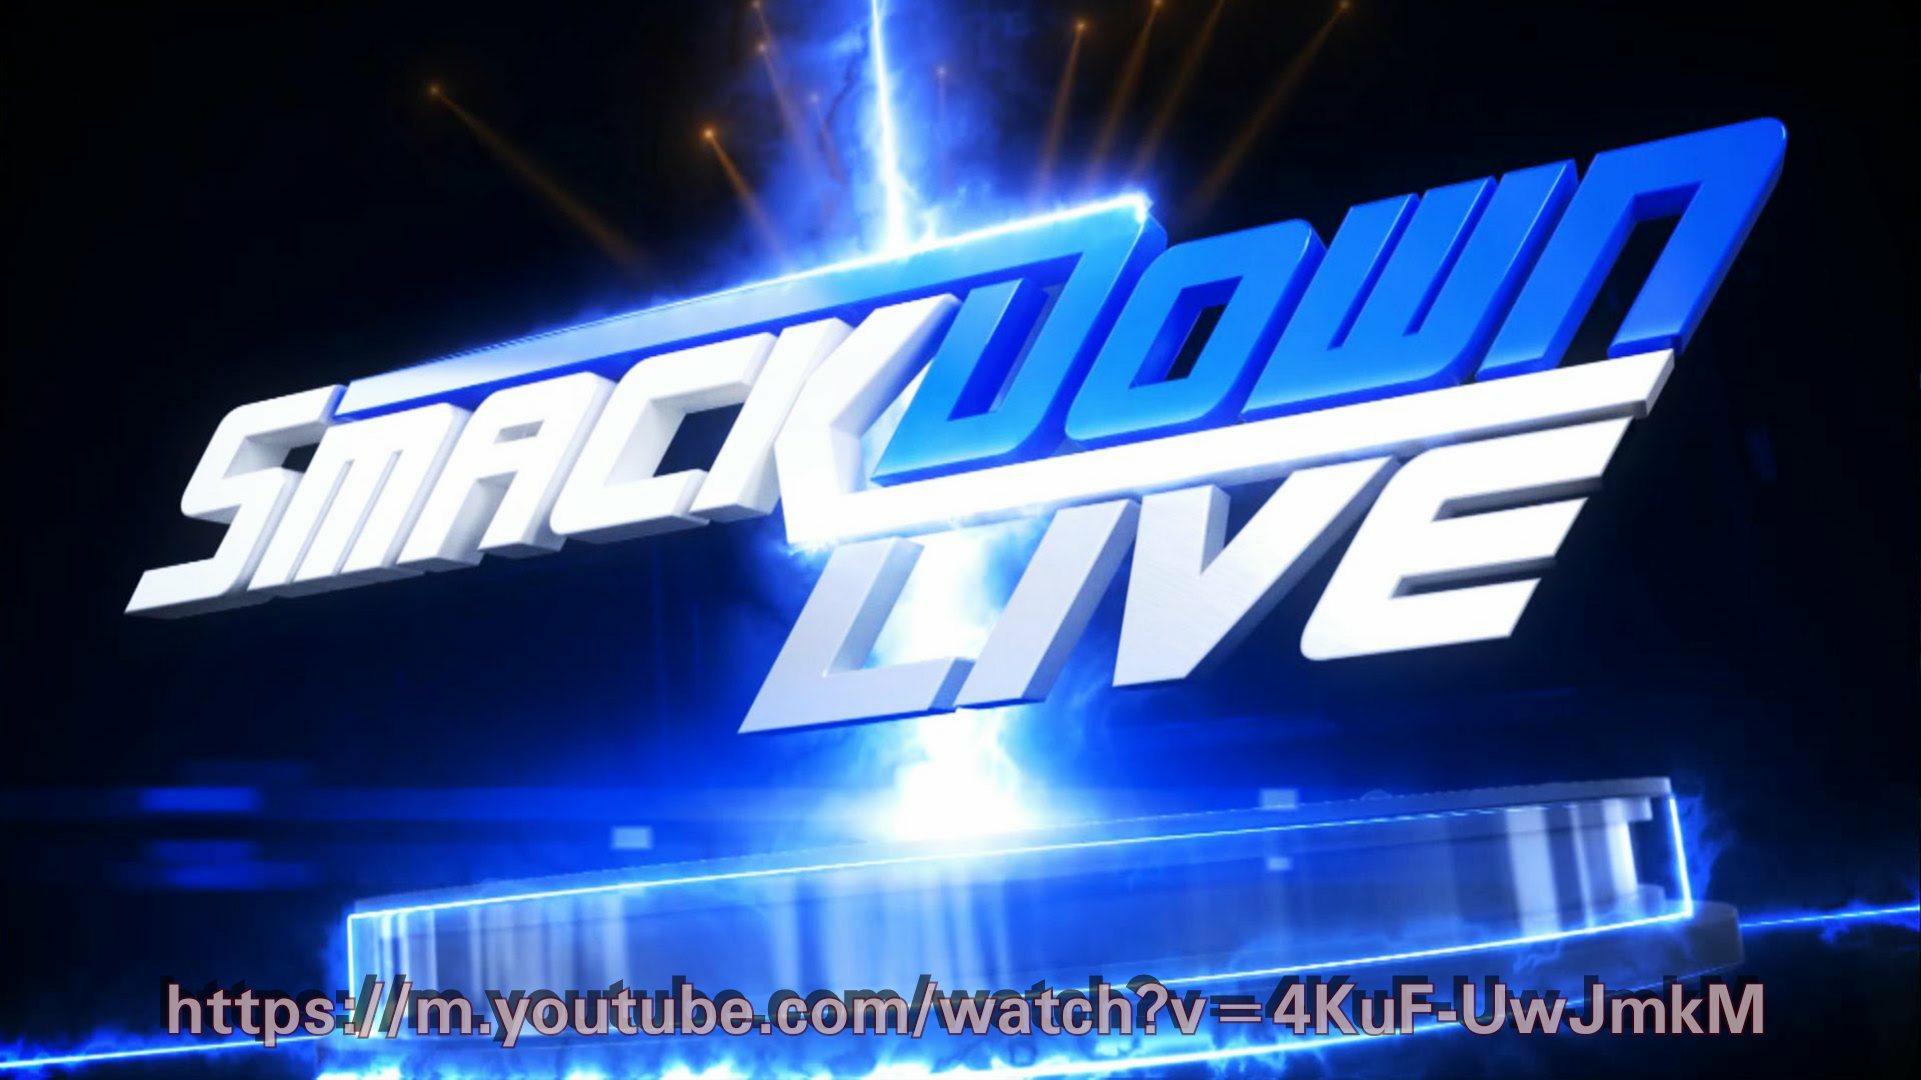 Wwe Smackdown Live A Night Full Of Frustration Wwe News Wwe Wwe S